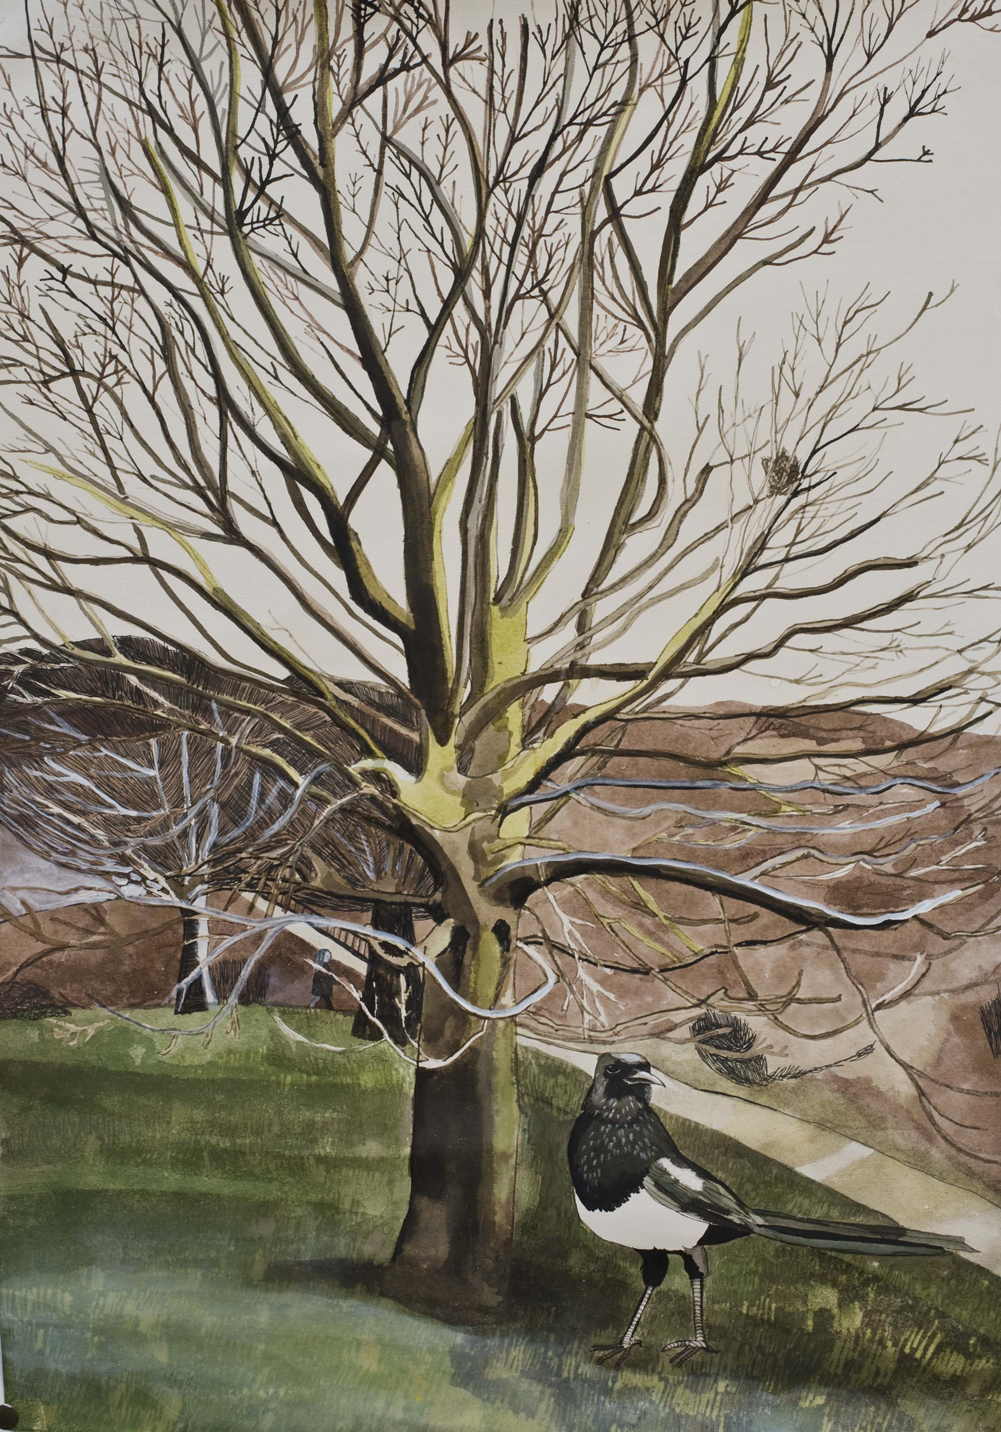 Magpie Morning, Hampstead Heath, 2012, mixed media on paper, 72 x 52 cm